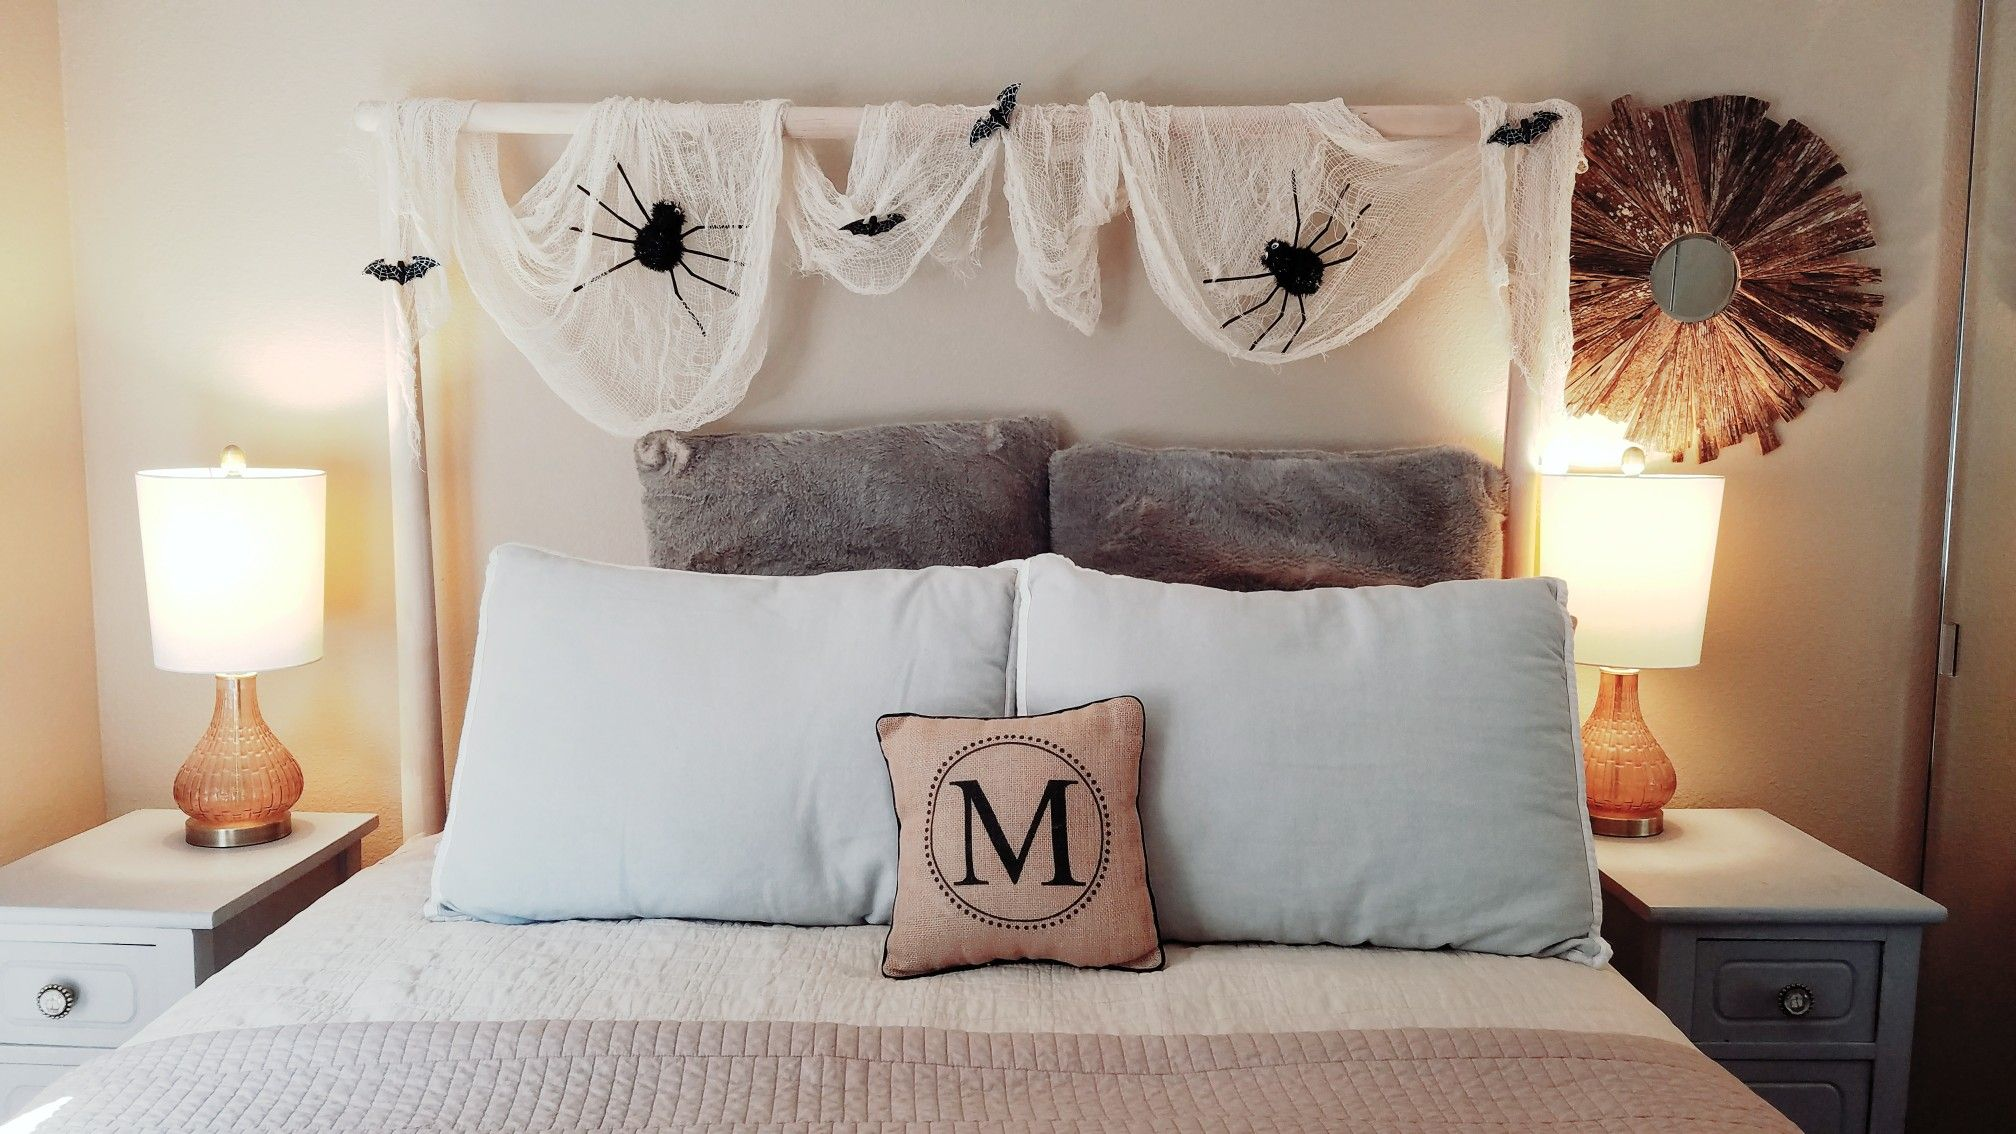 My Diy Halloween Decorations Spider Web Cost $6 Total With